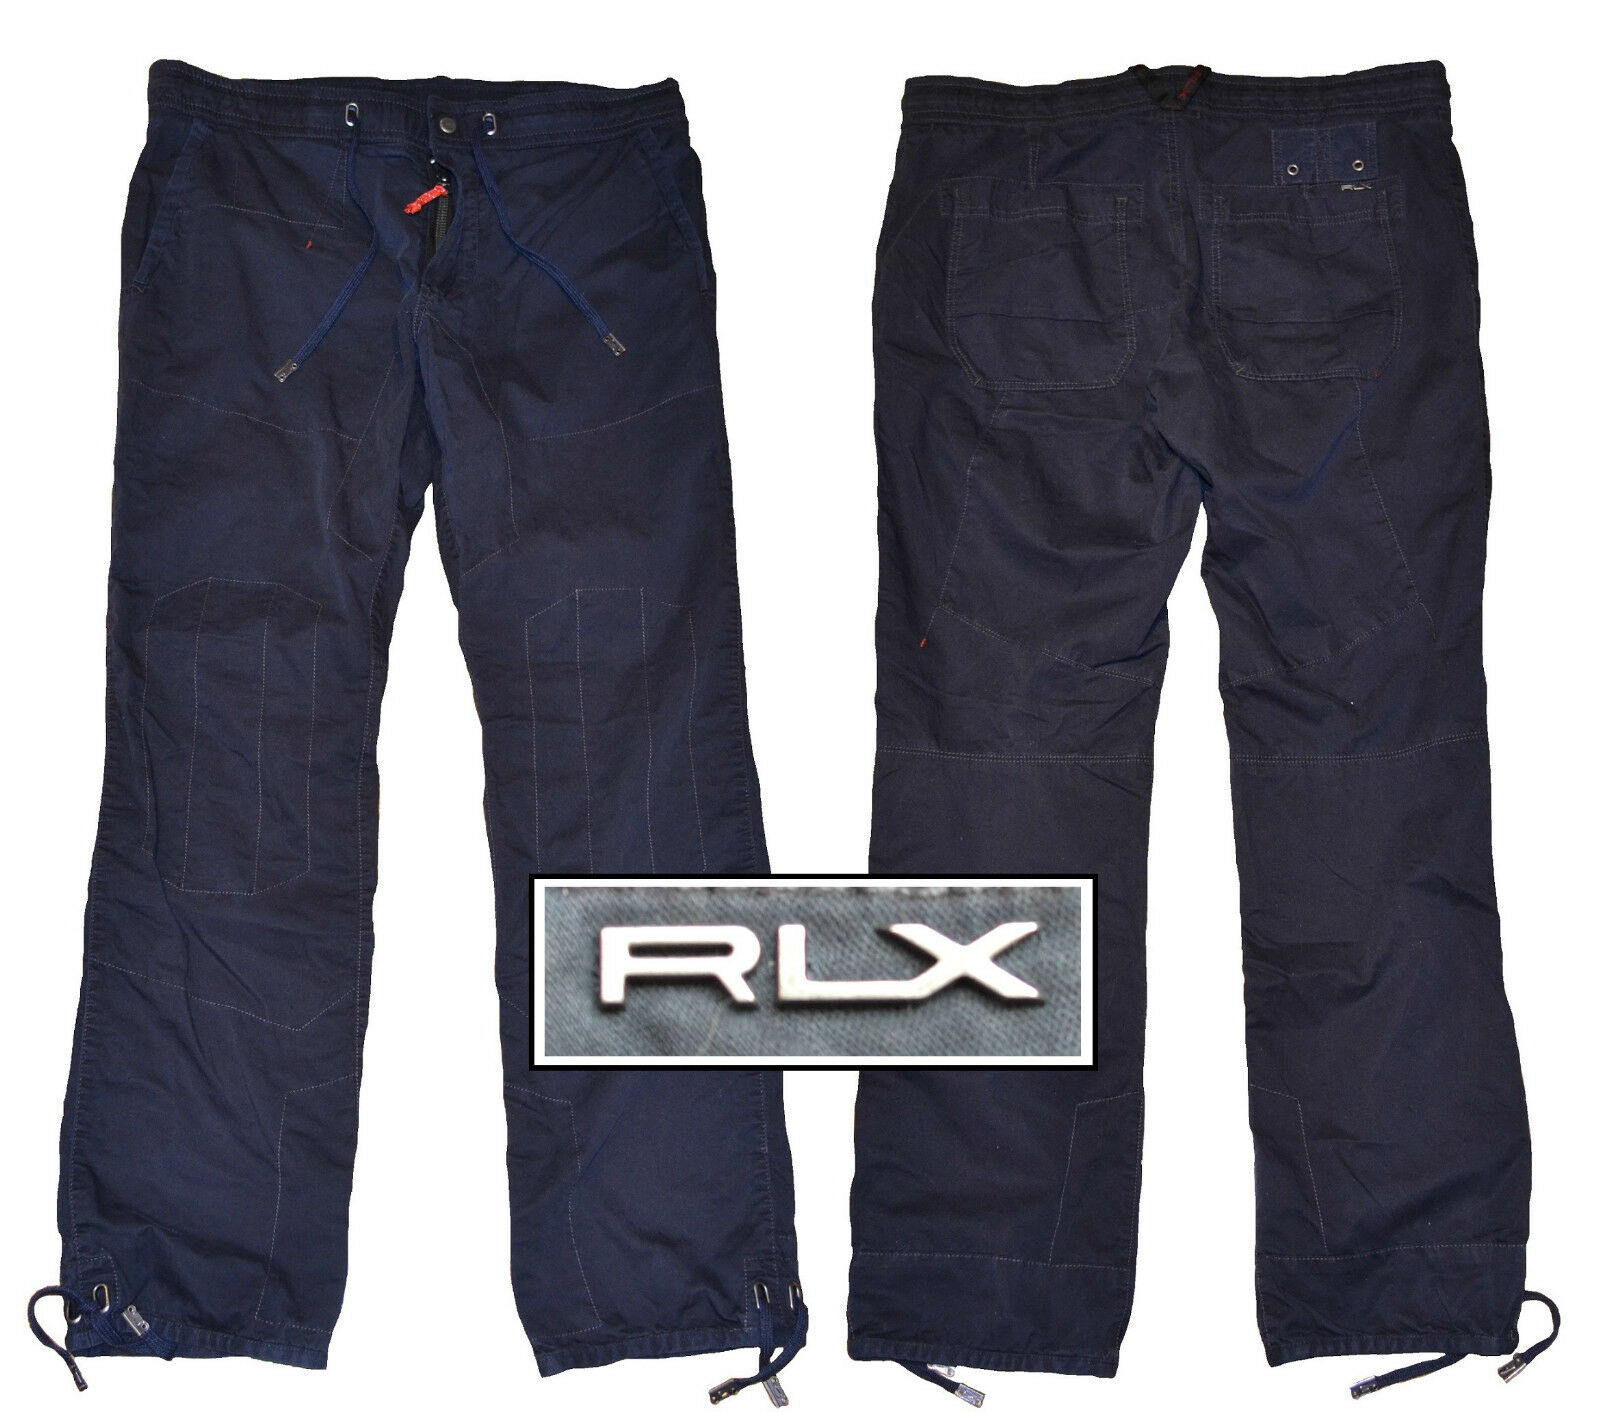 NWT RLX Ralph Lauren All-Terrain Twill Pants in Navy Size 38X30